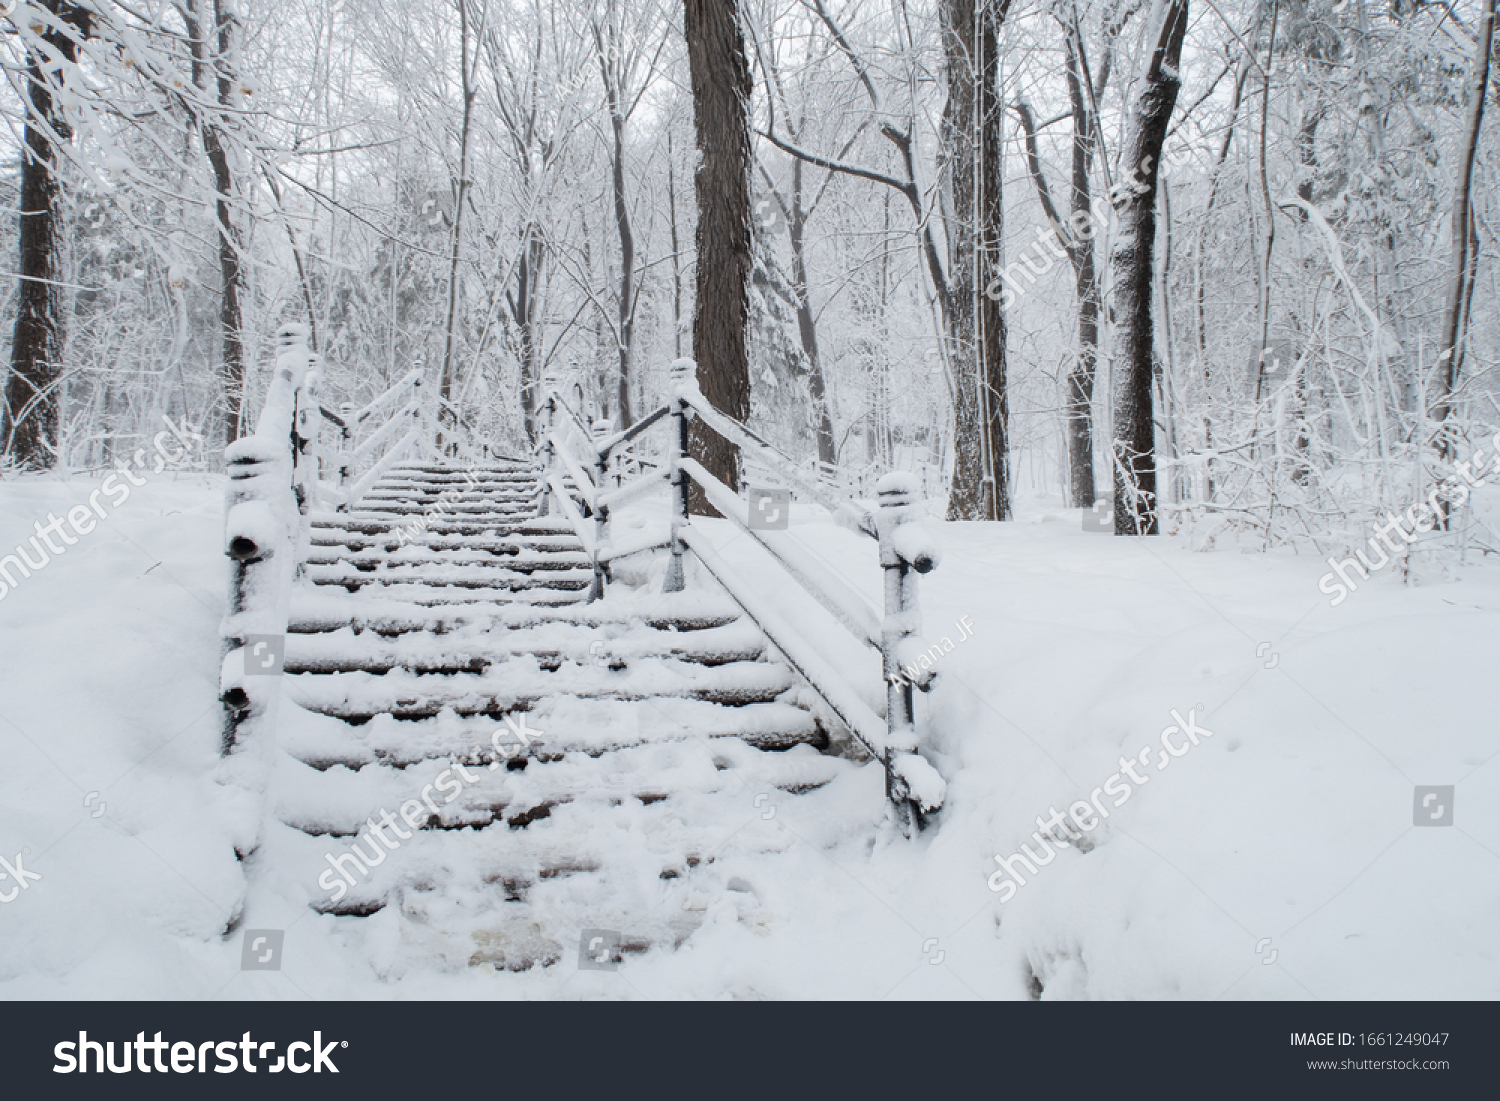 Stairs covered with snow in a peaceful forest